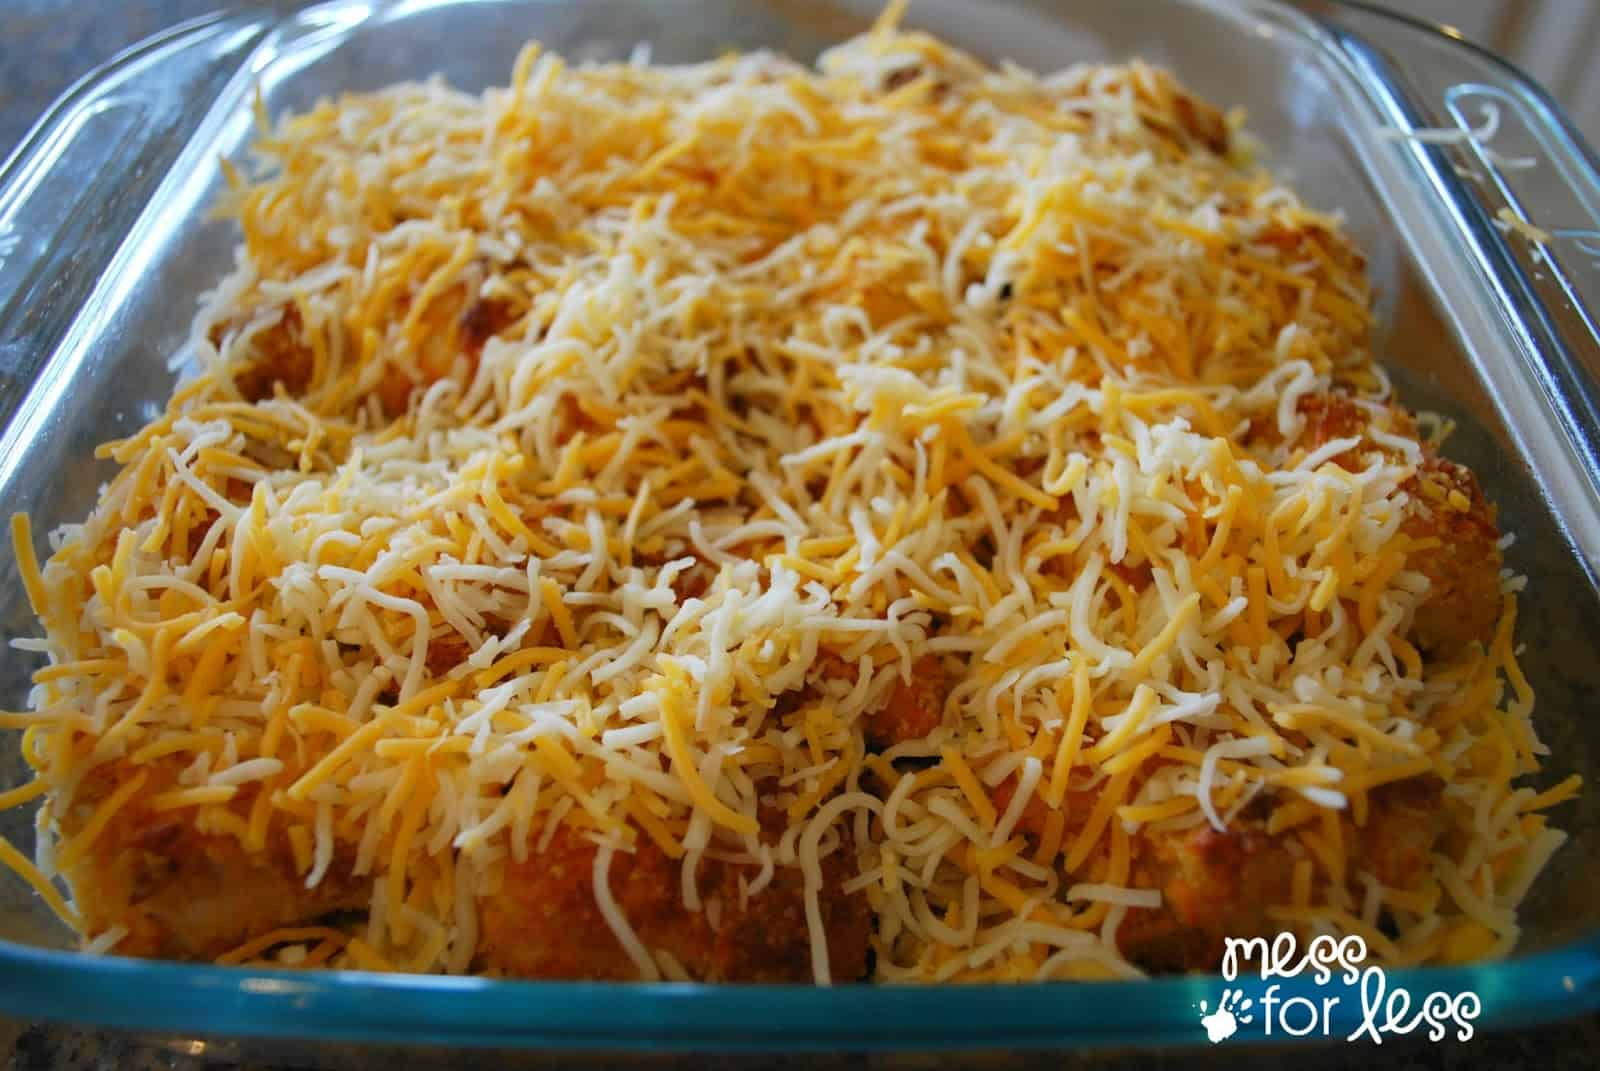 Southwestern Chicken Casserole - Mess for Less